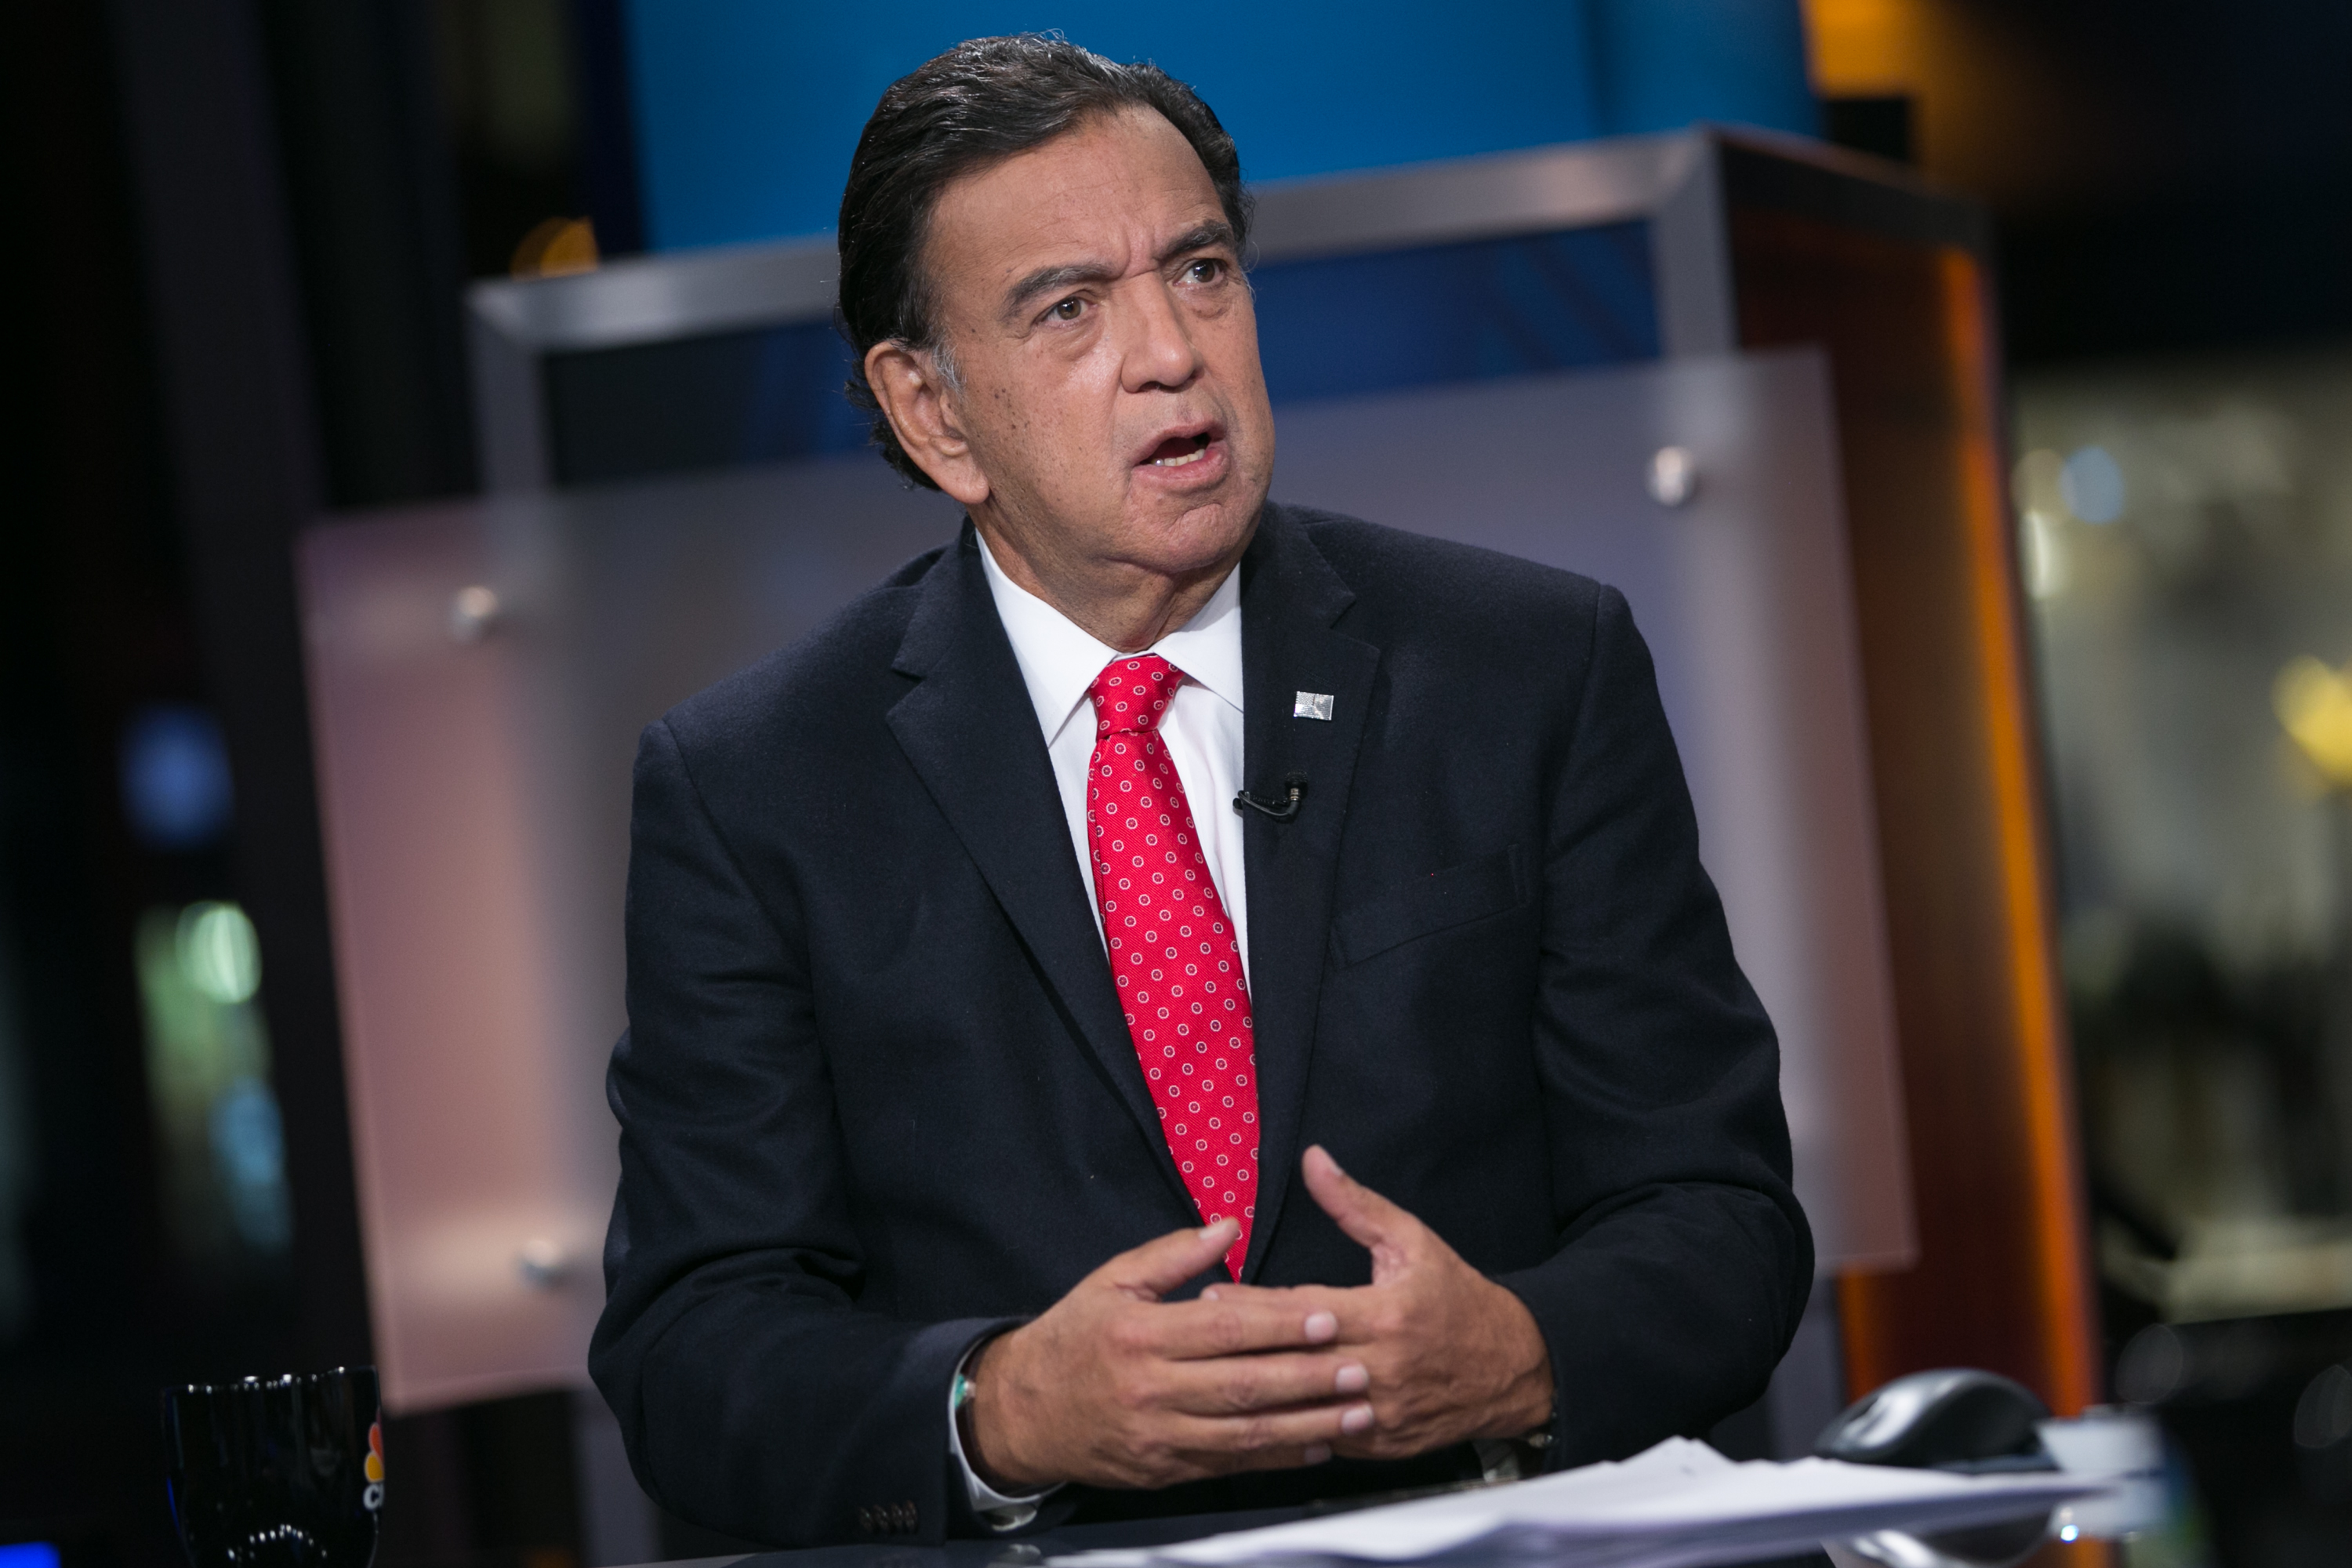 Bill Richardson, former Governor of New Mexico, in an interview on January 13, 2015.